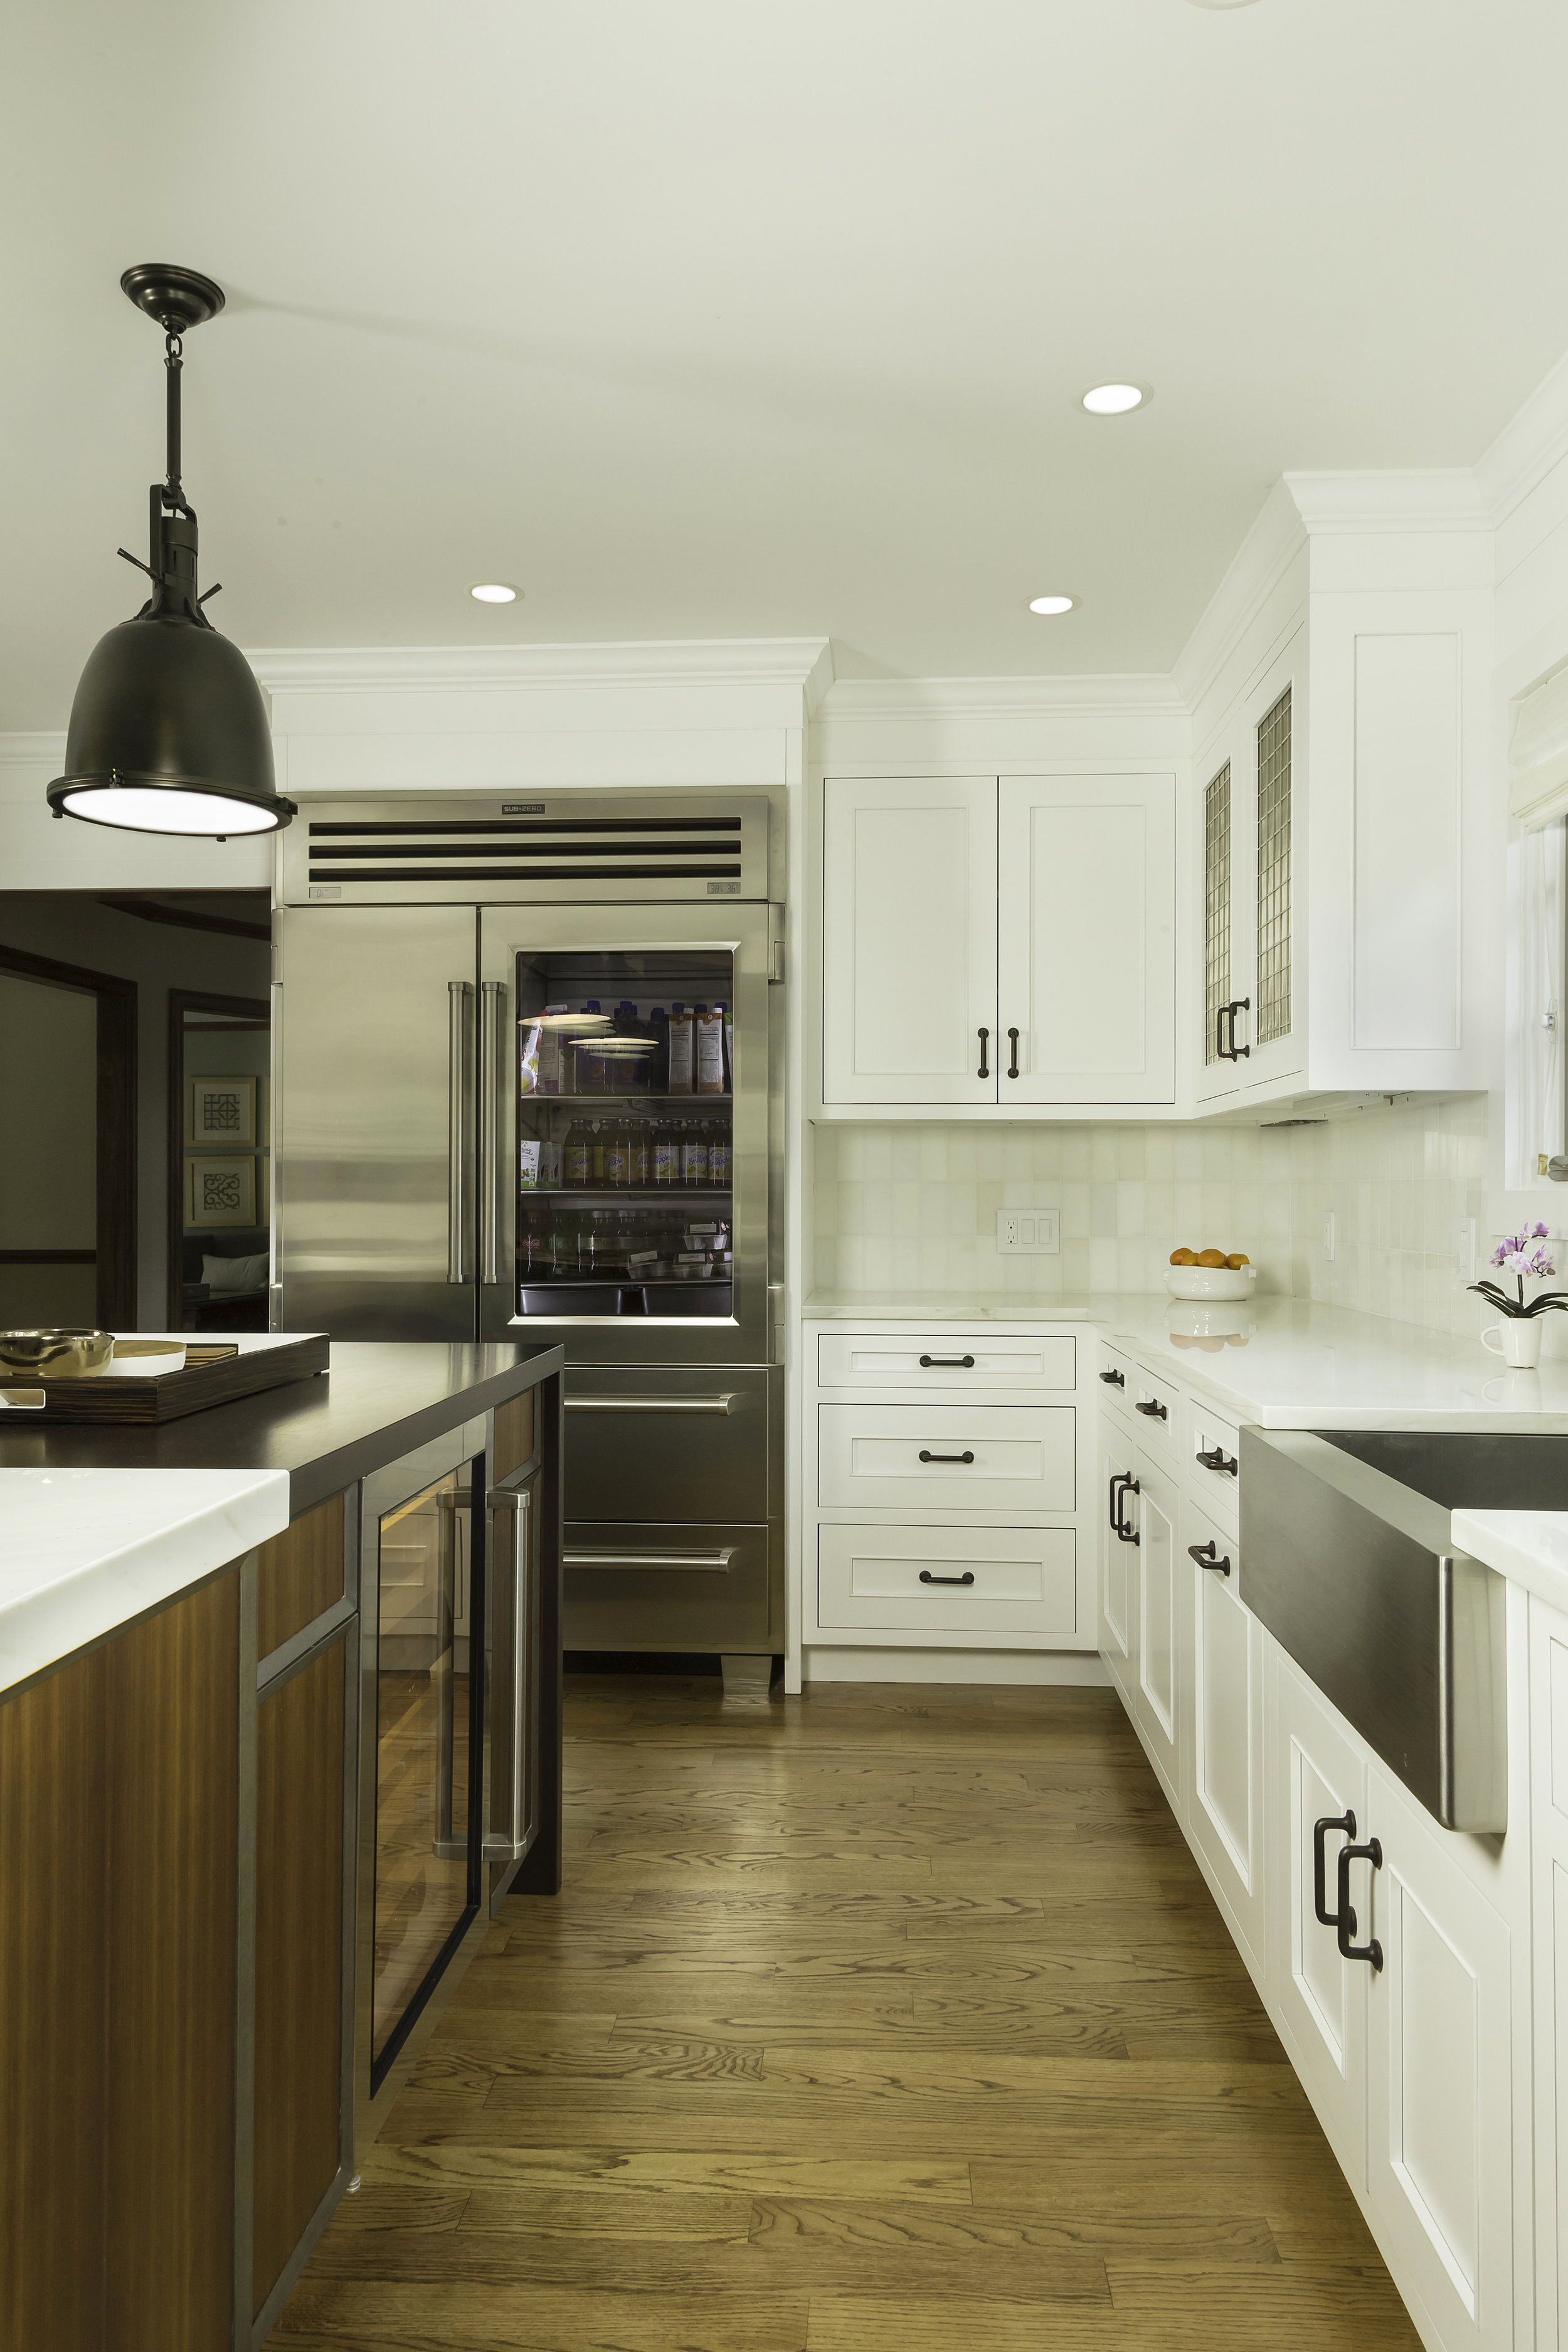 Contemporary style kitchen with two pendant lighting